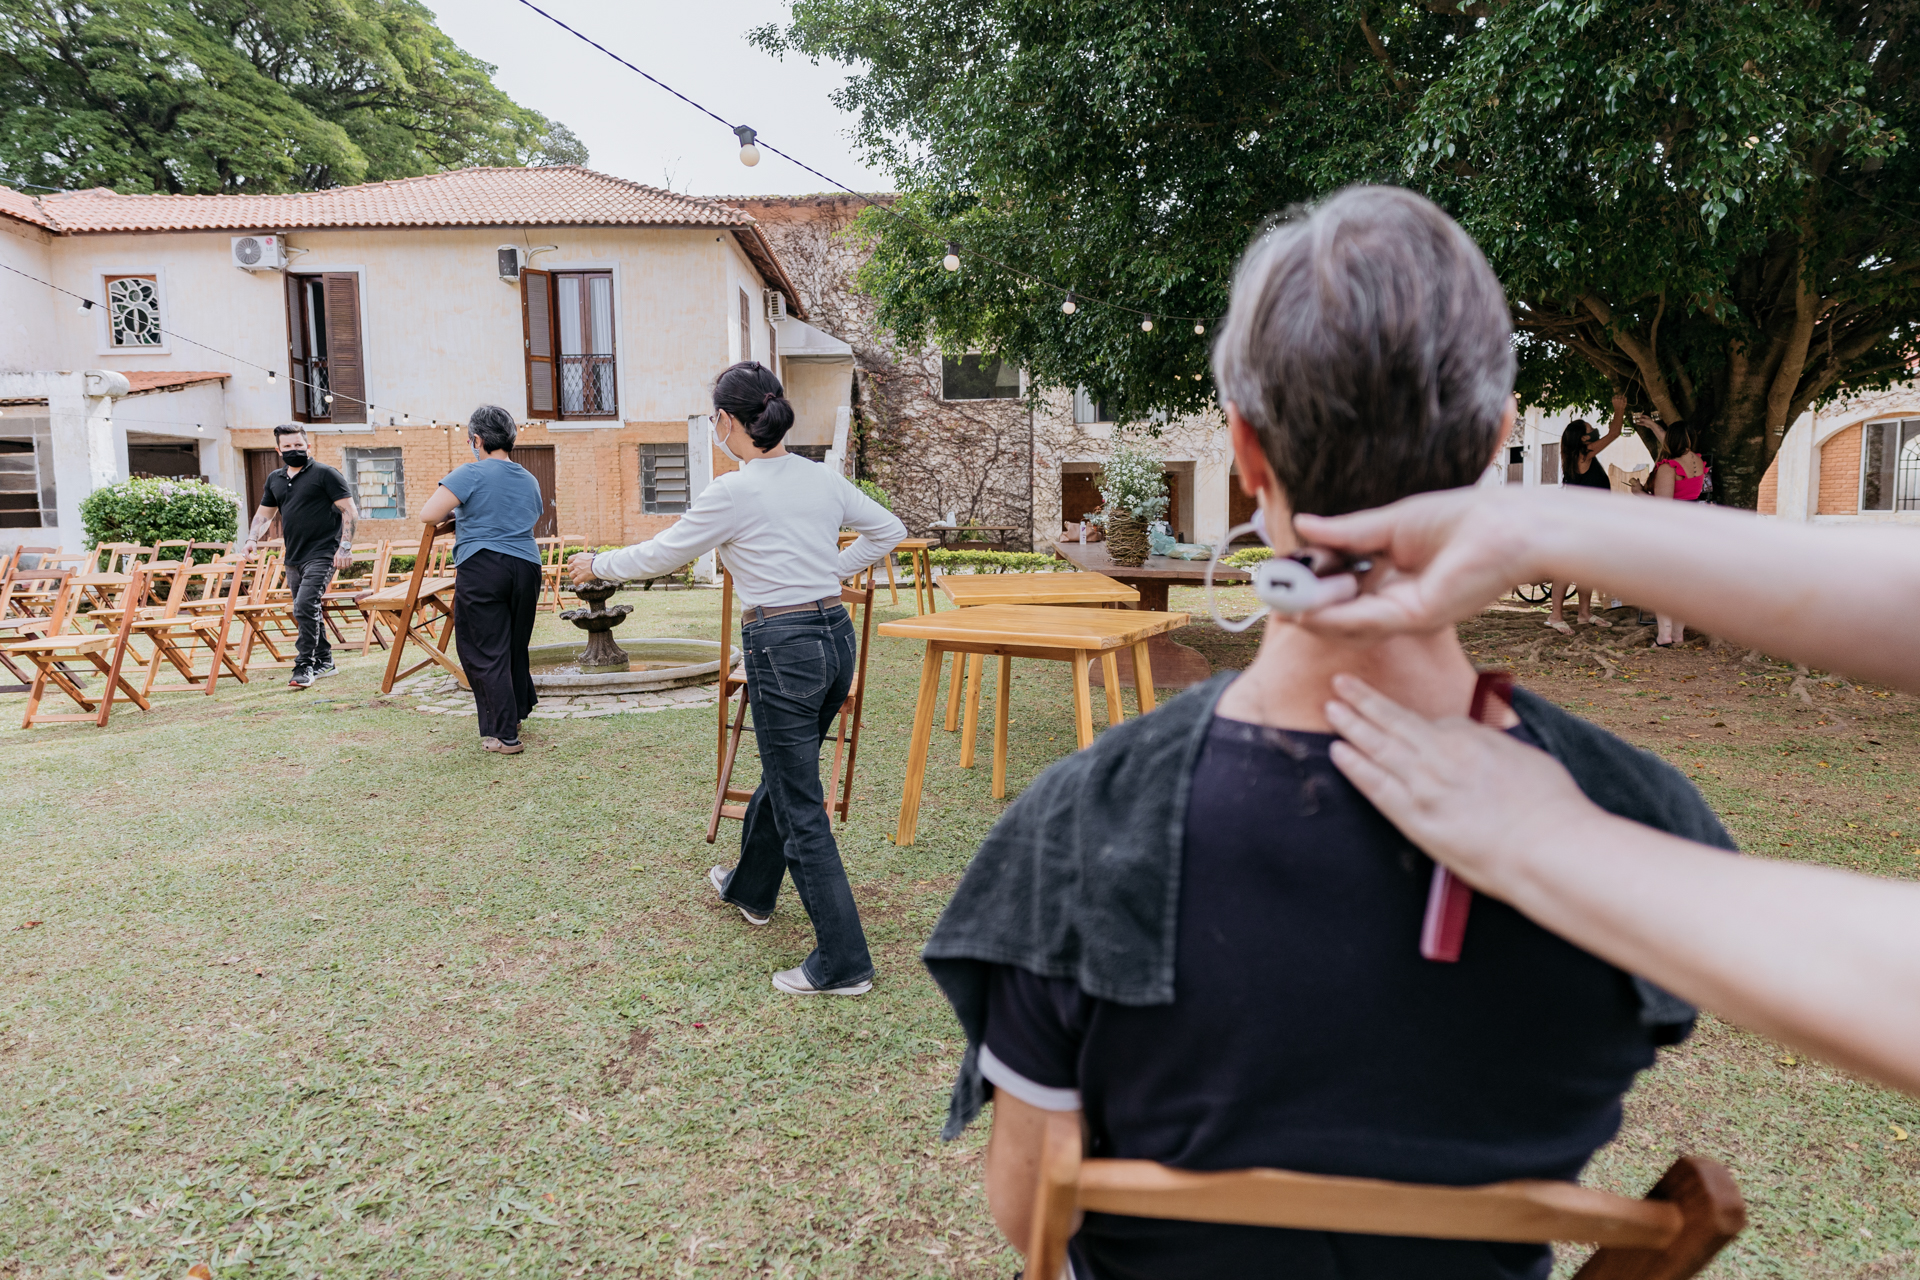 Hotel Fazenda Pictures at Maristela - Brazil Weddings | The groom sits down for a quick trim